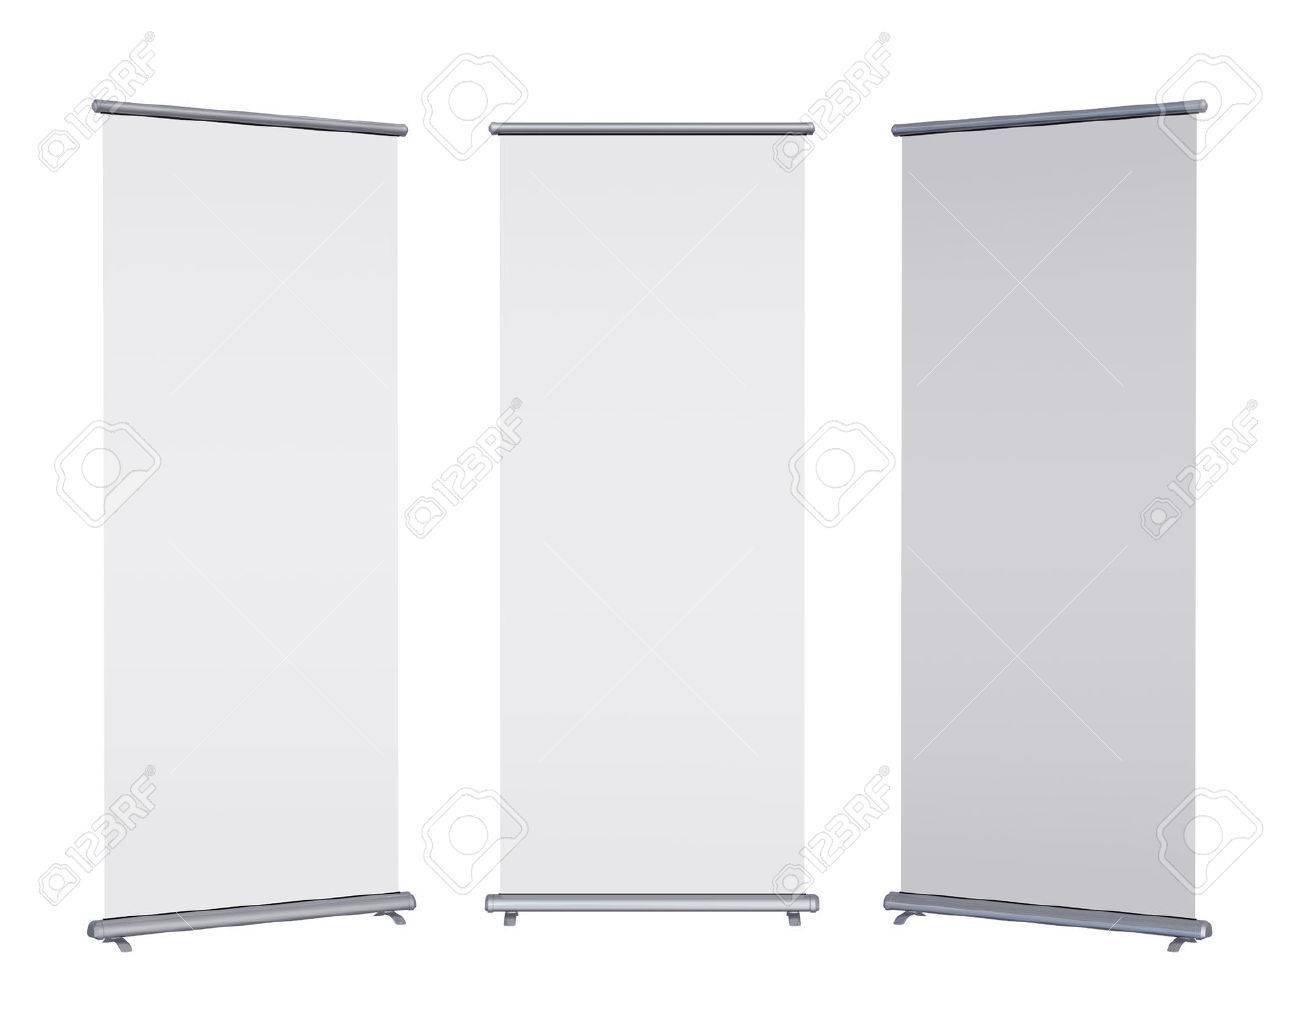 Blank roll-up banner display, isolated with clipping path - 30491953